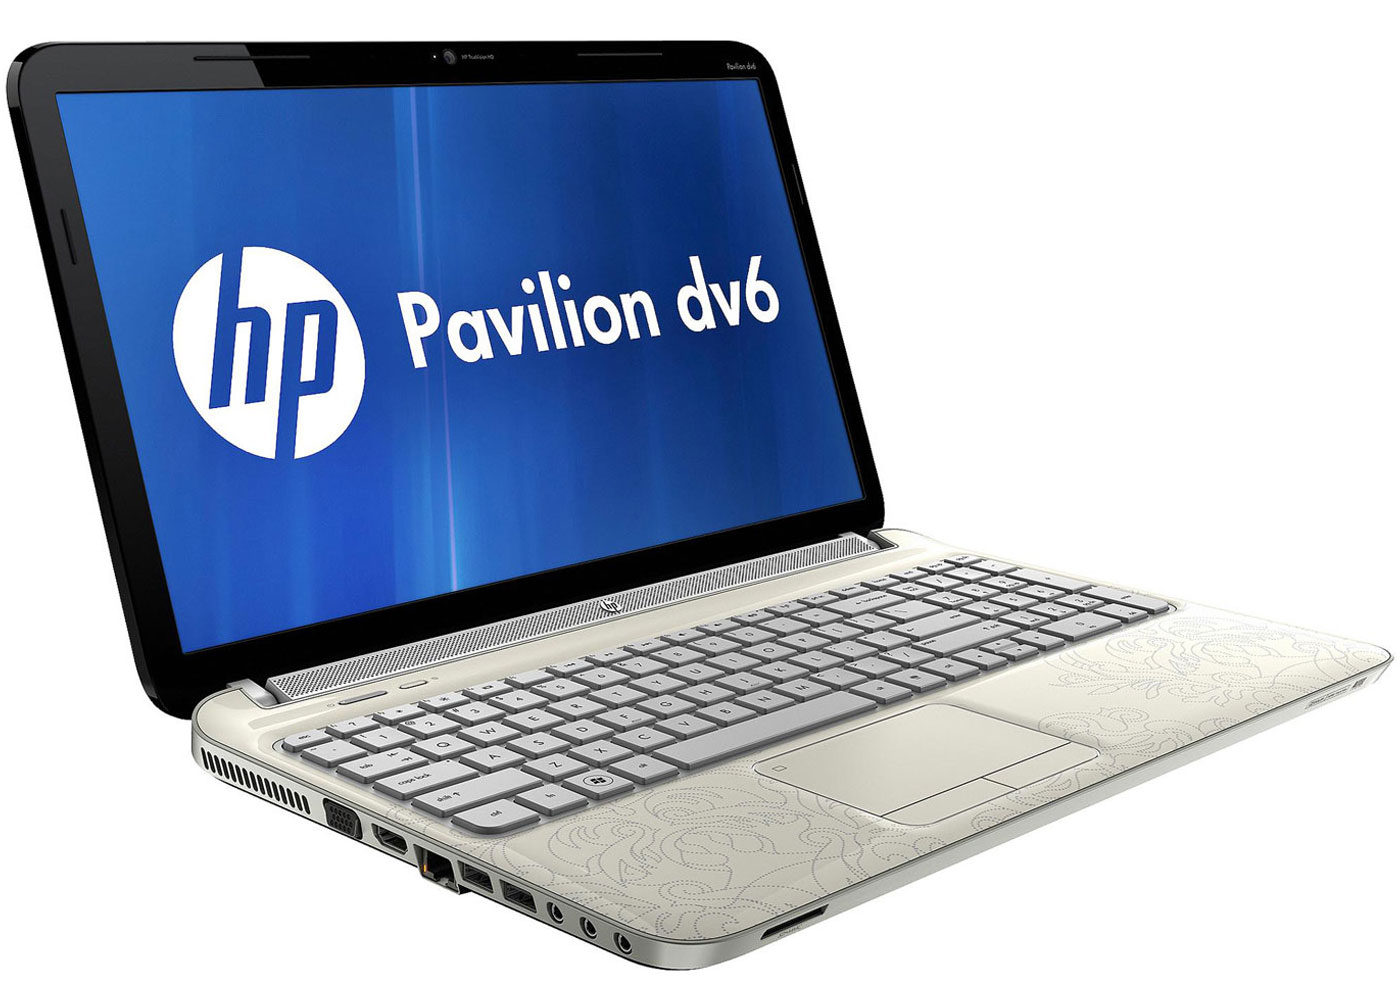 HP Pavilion Dv66b13tx Laptop Price in Pakistan